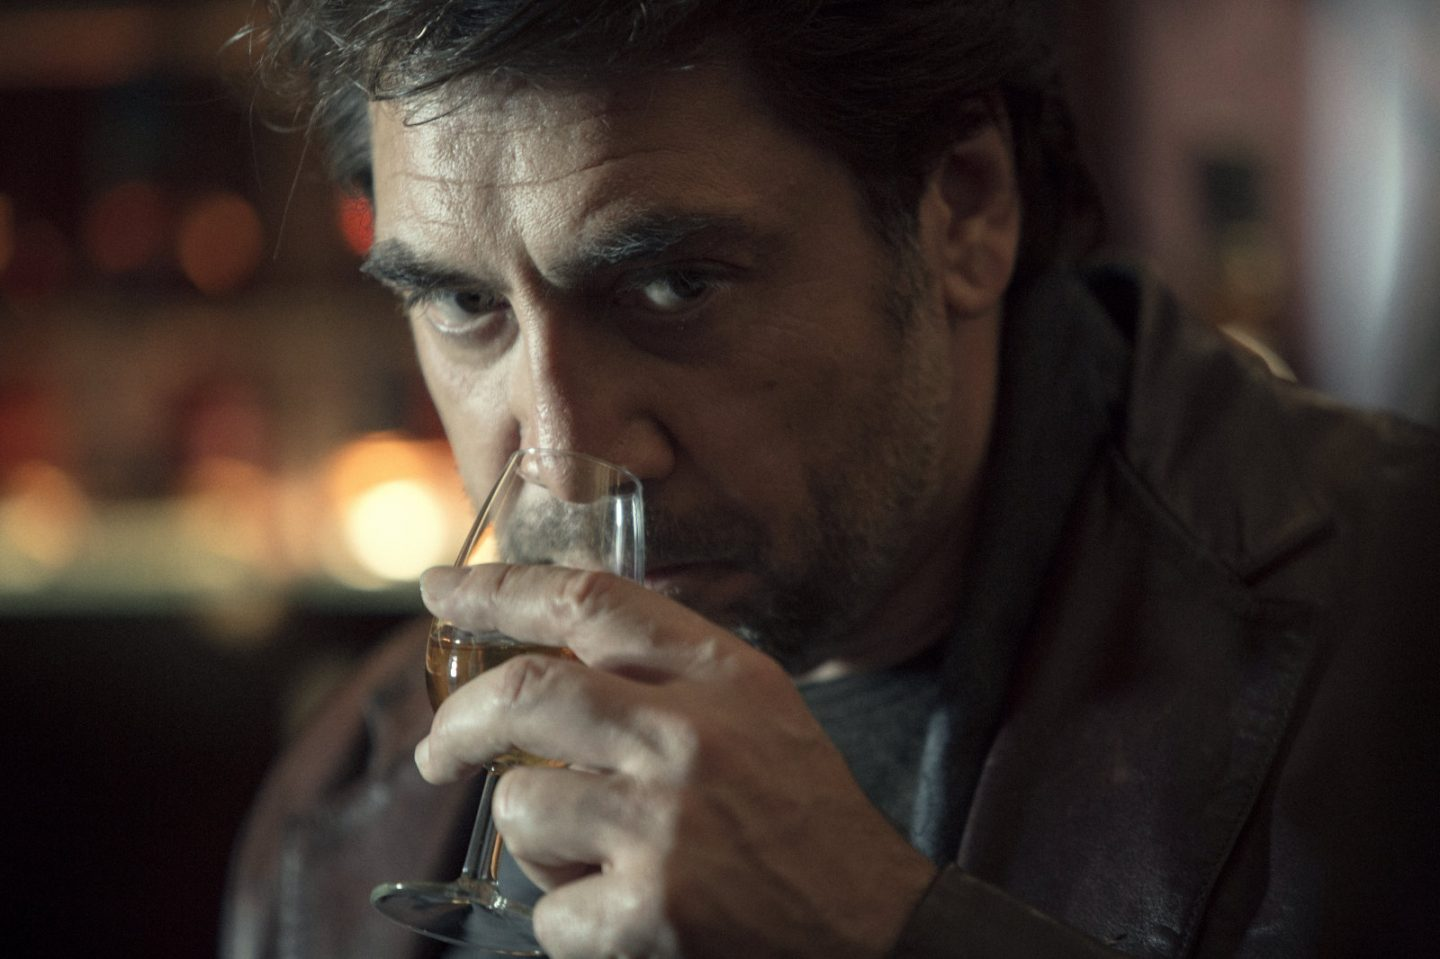 Javier Bardem visits the Scottish Highlands' home of Chivas Regal for future promotional film